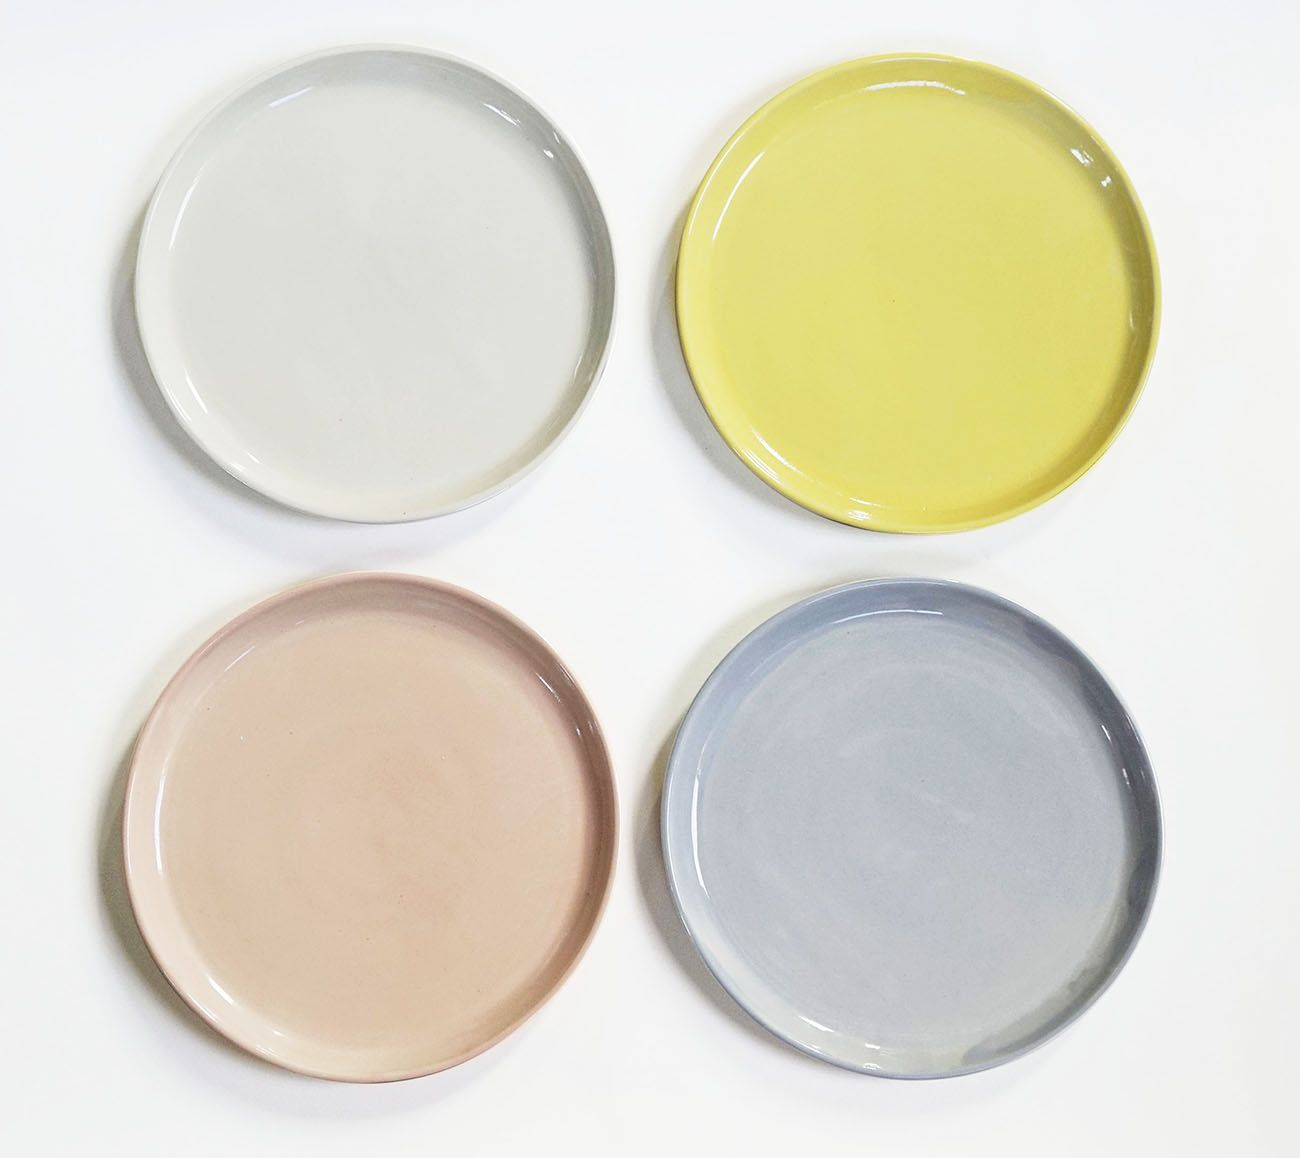 Helen Leviu0027s dinner plates are available in matte cobalt (chic) as well four mismatched & Helen Leviu0027s dinner plates are available in matte cobalt (chic) as ...